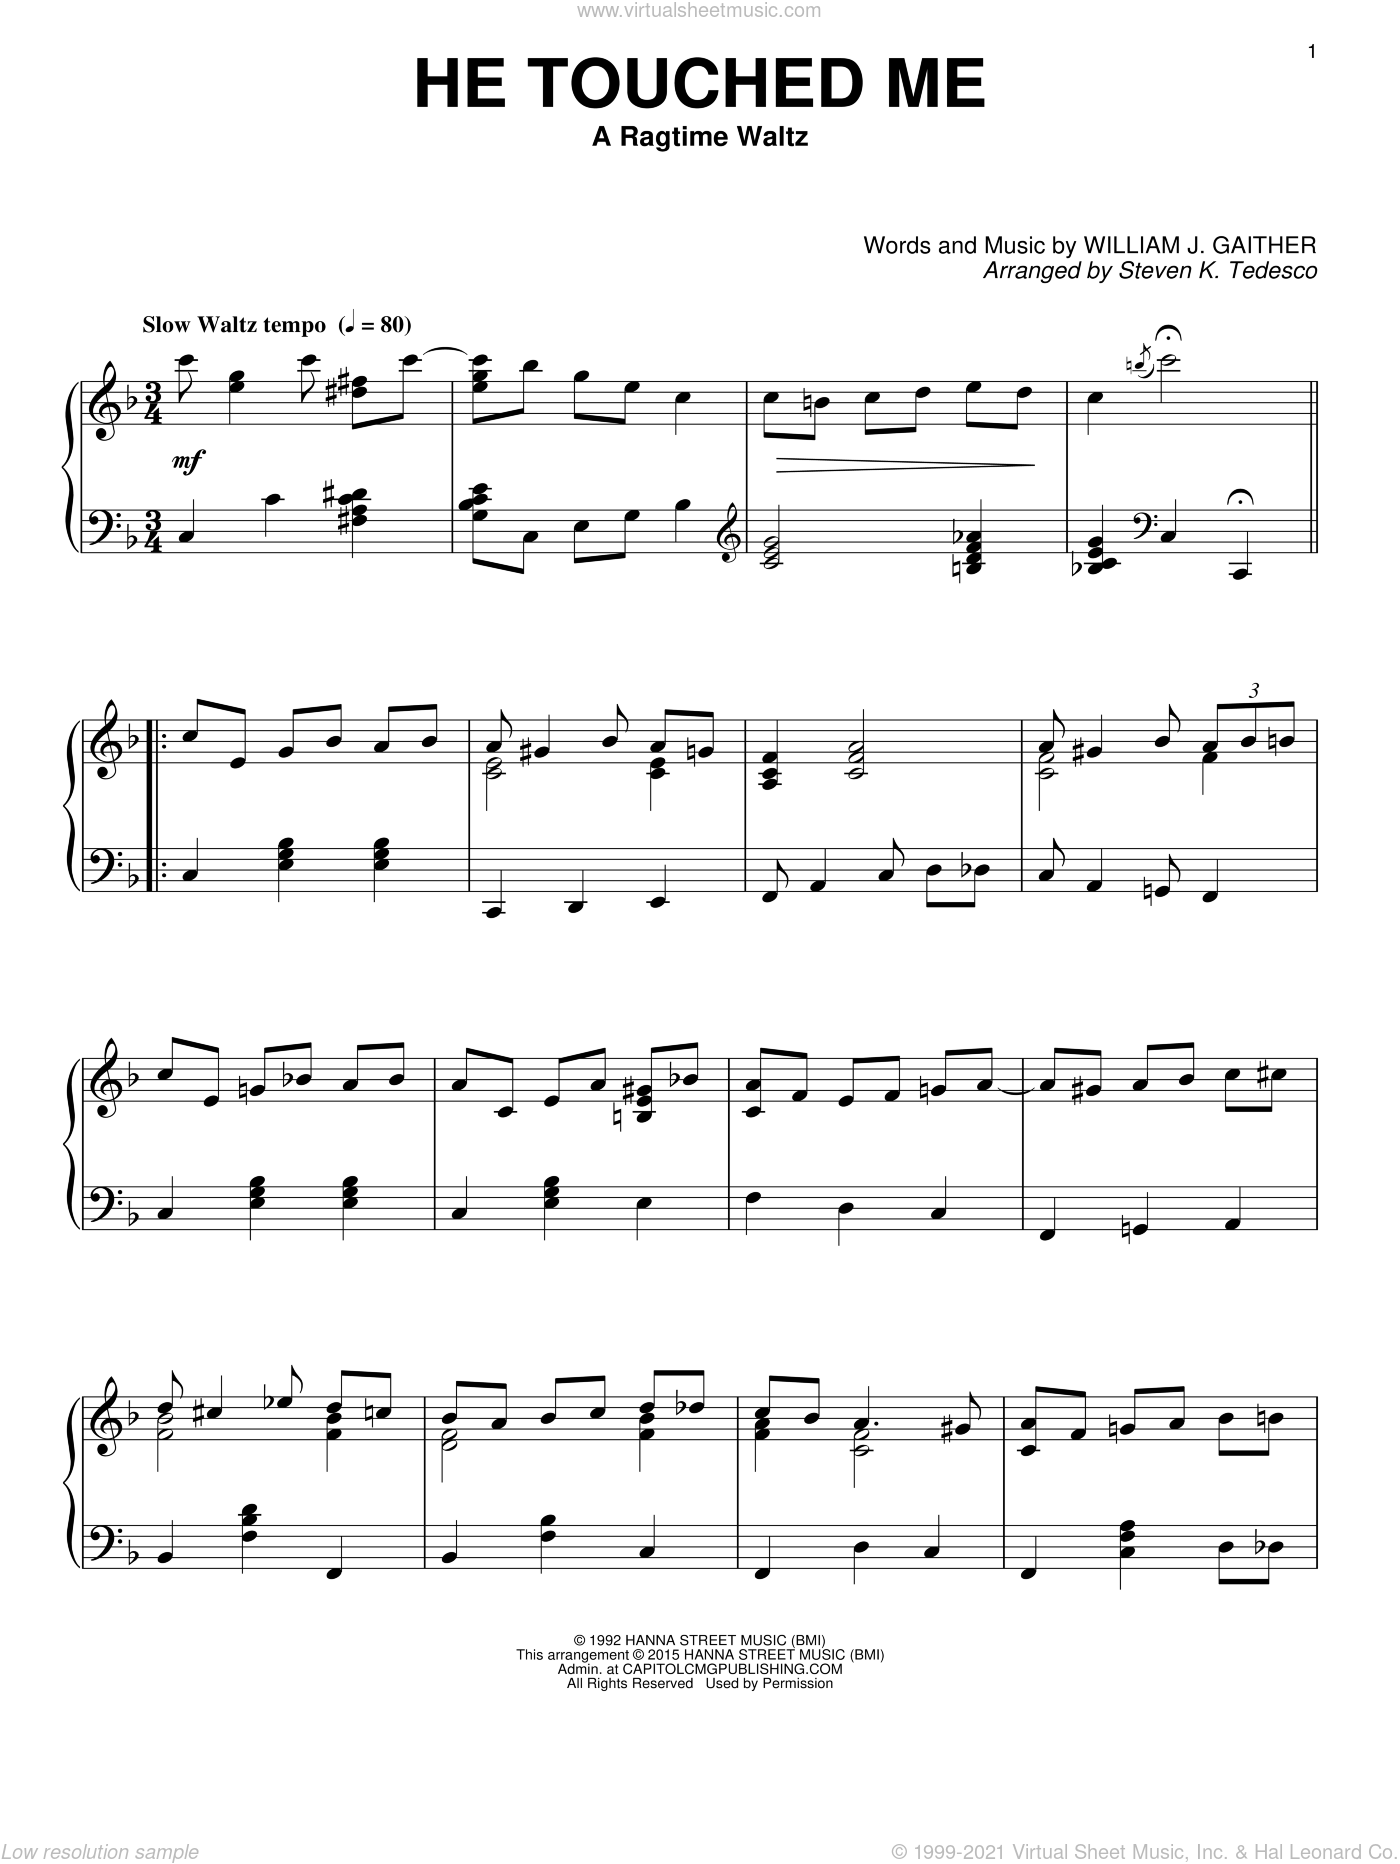 He Touched Me sheet music for piano solo by William J. Gaither and Steven K. Tedesco, intermediate skill level